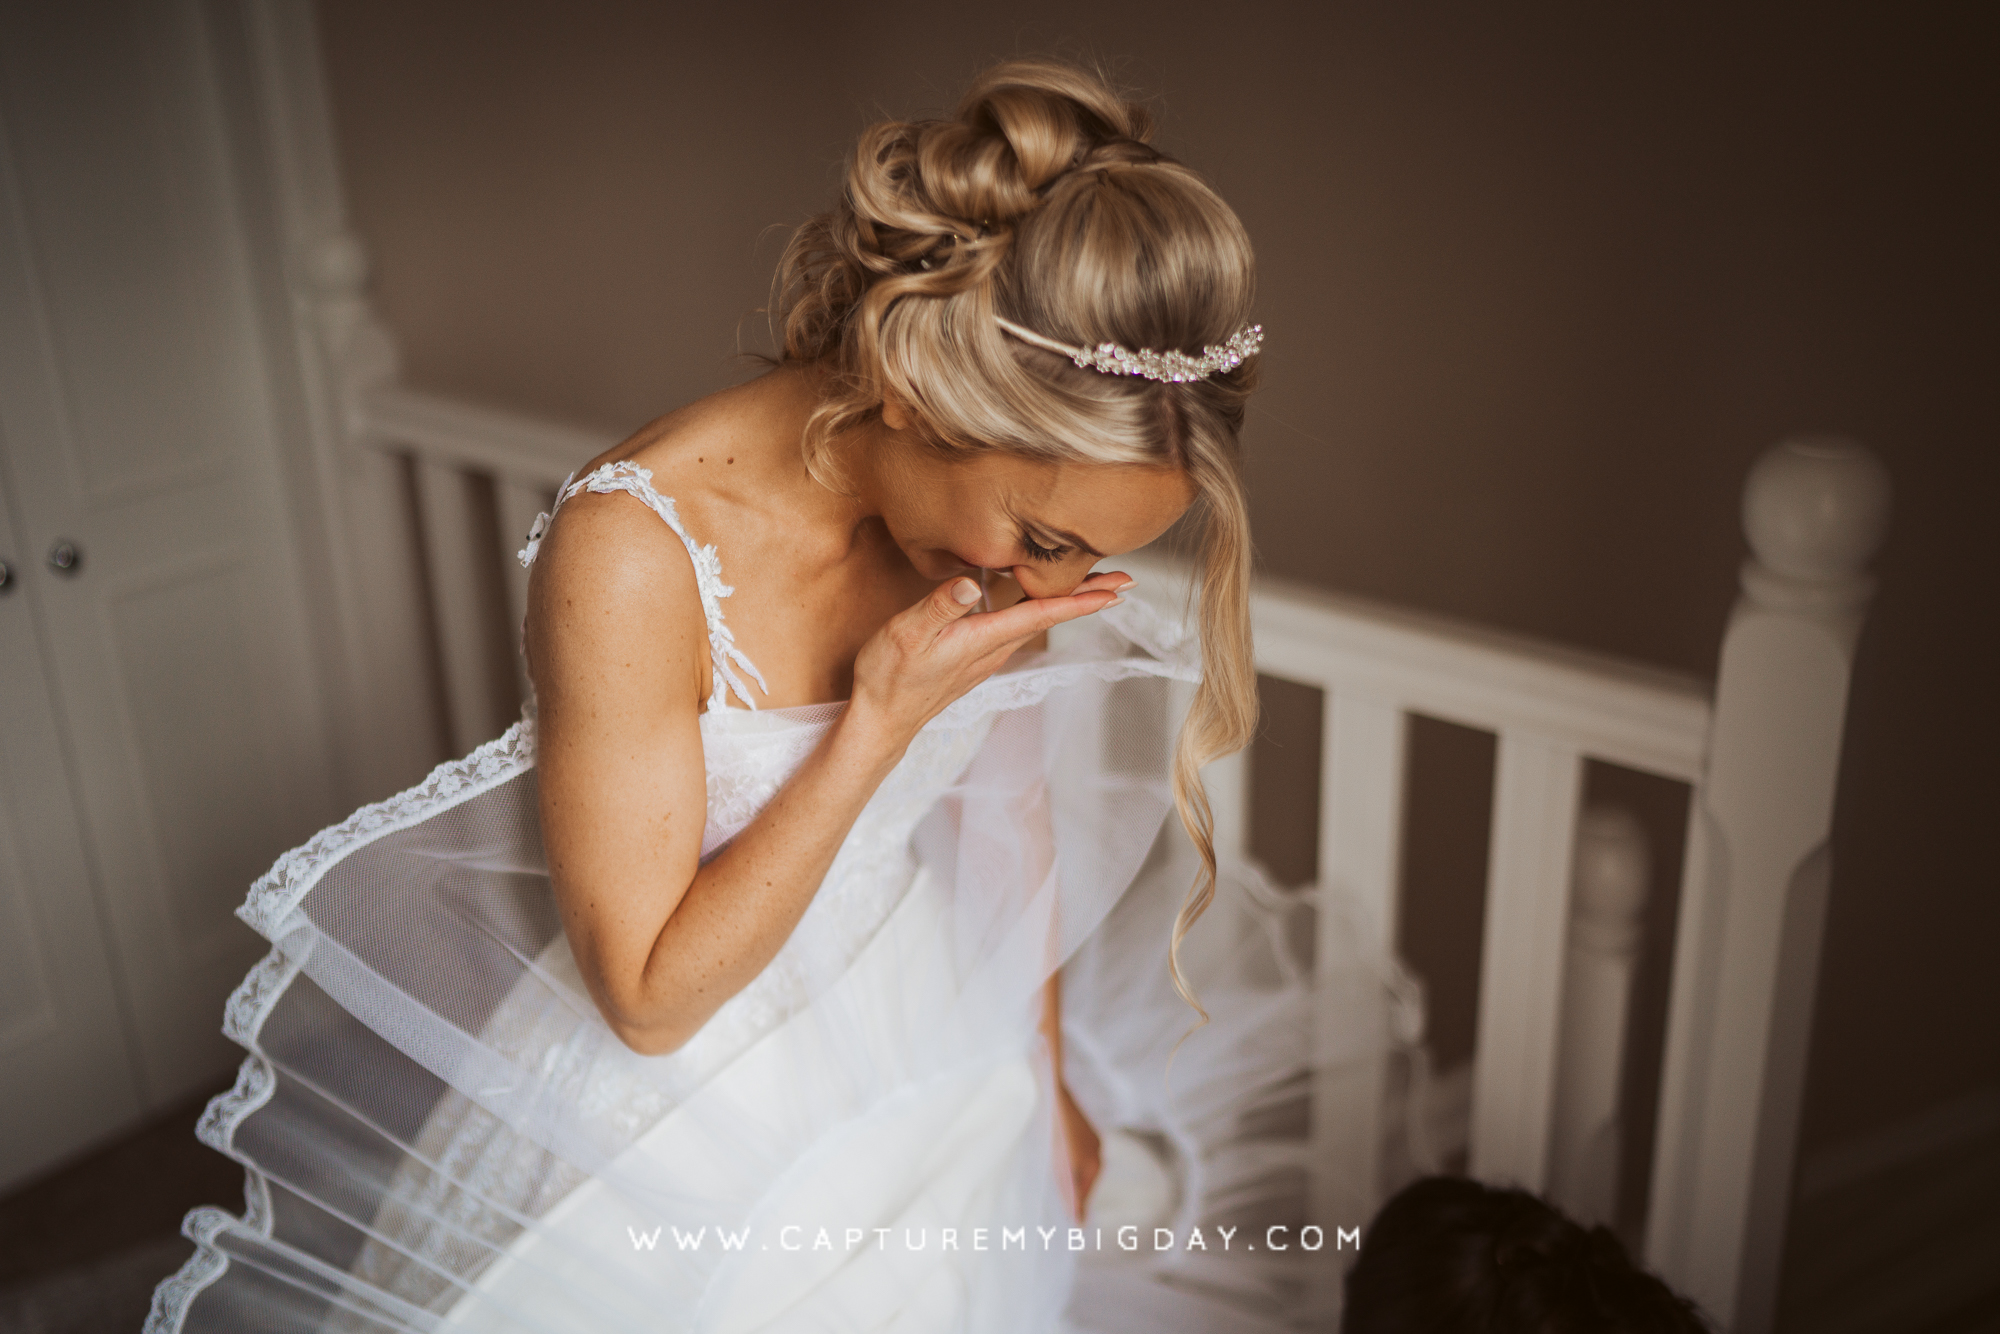 Bride in her wedding dress with underskirt sticking out